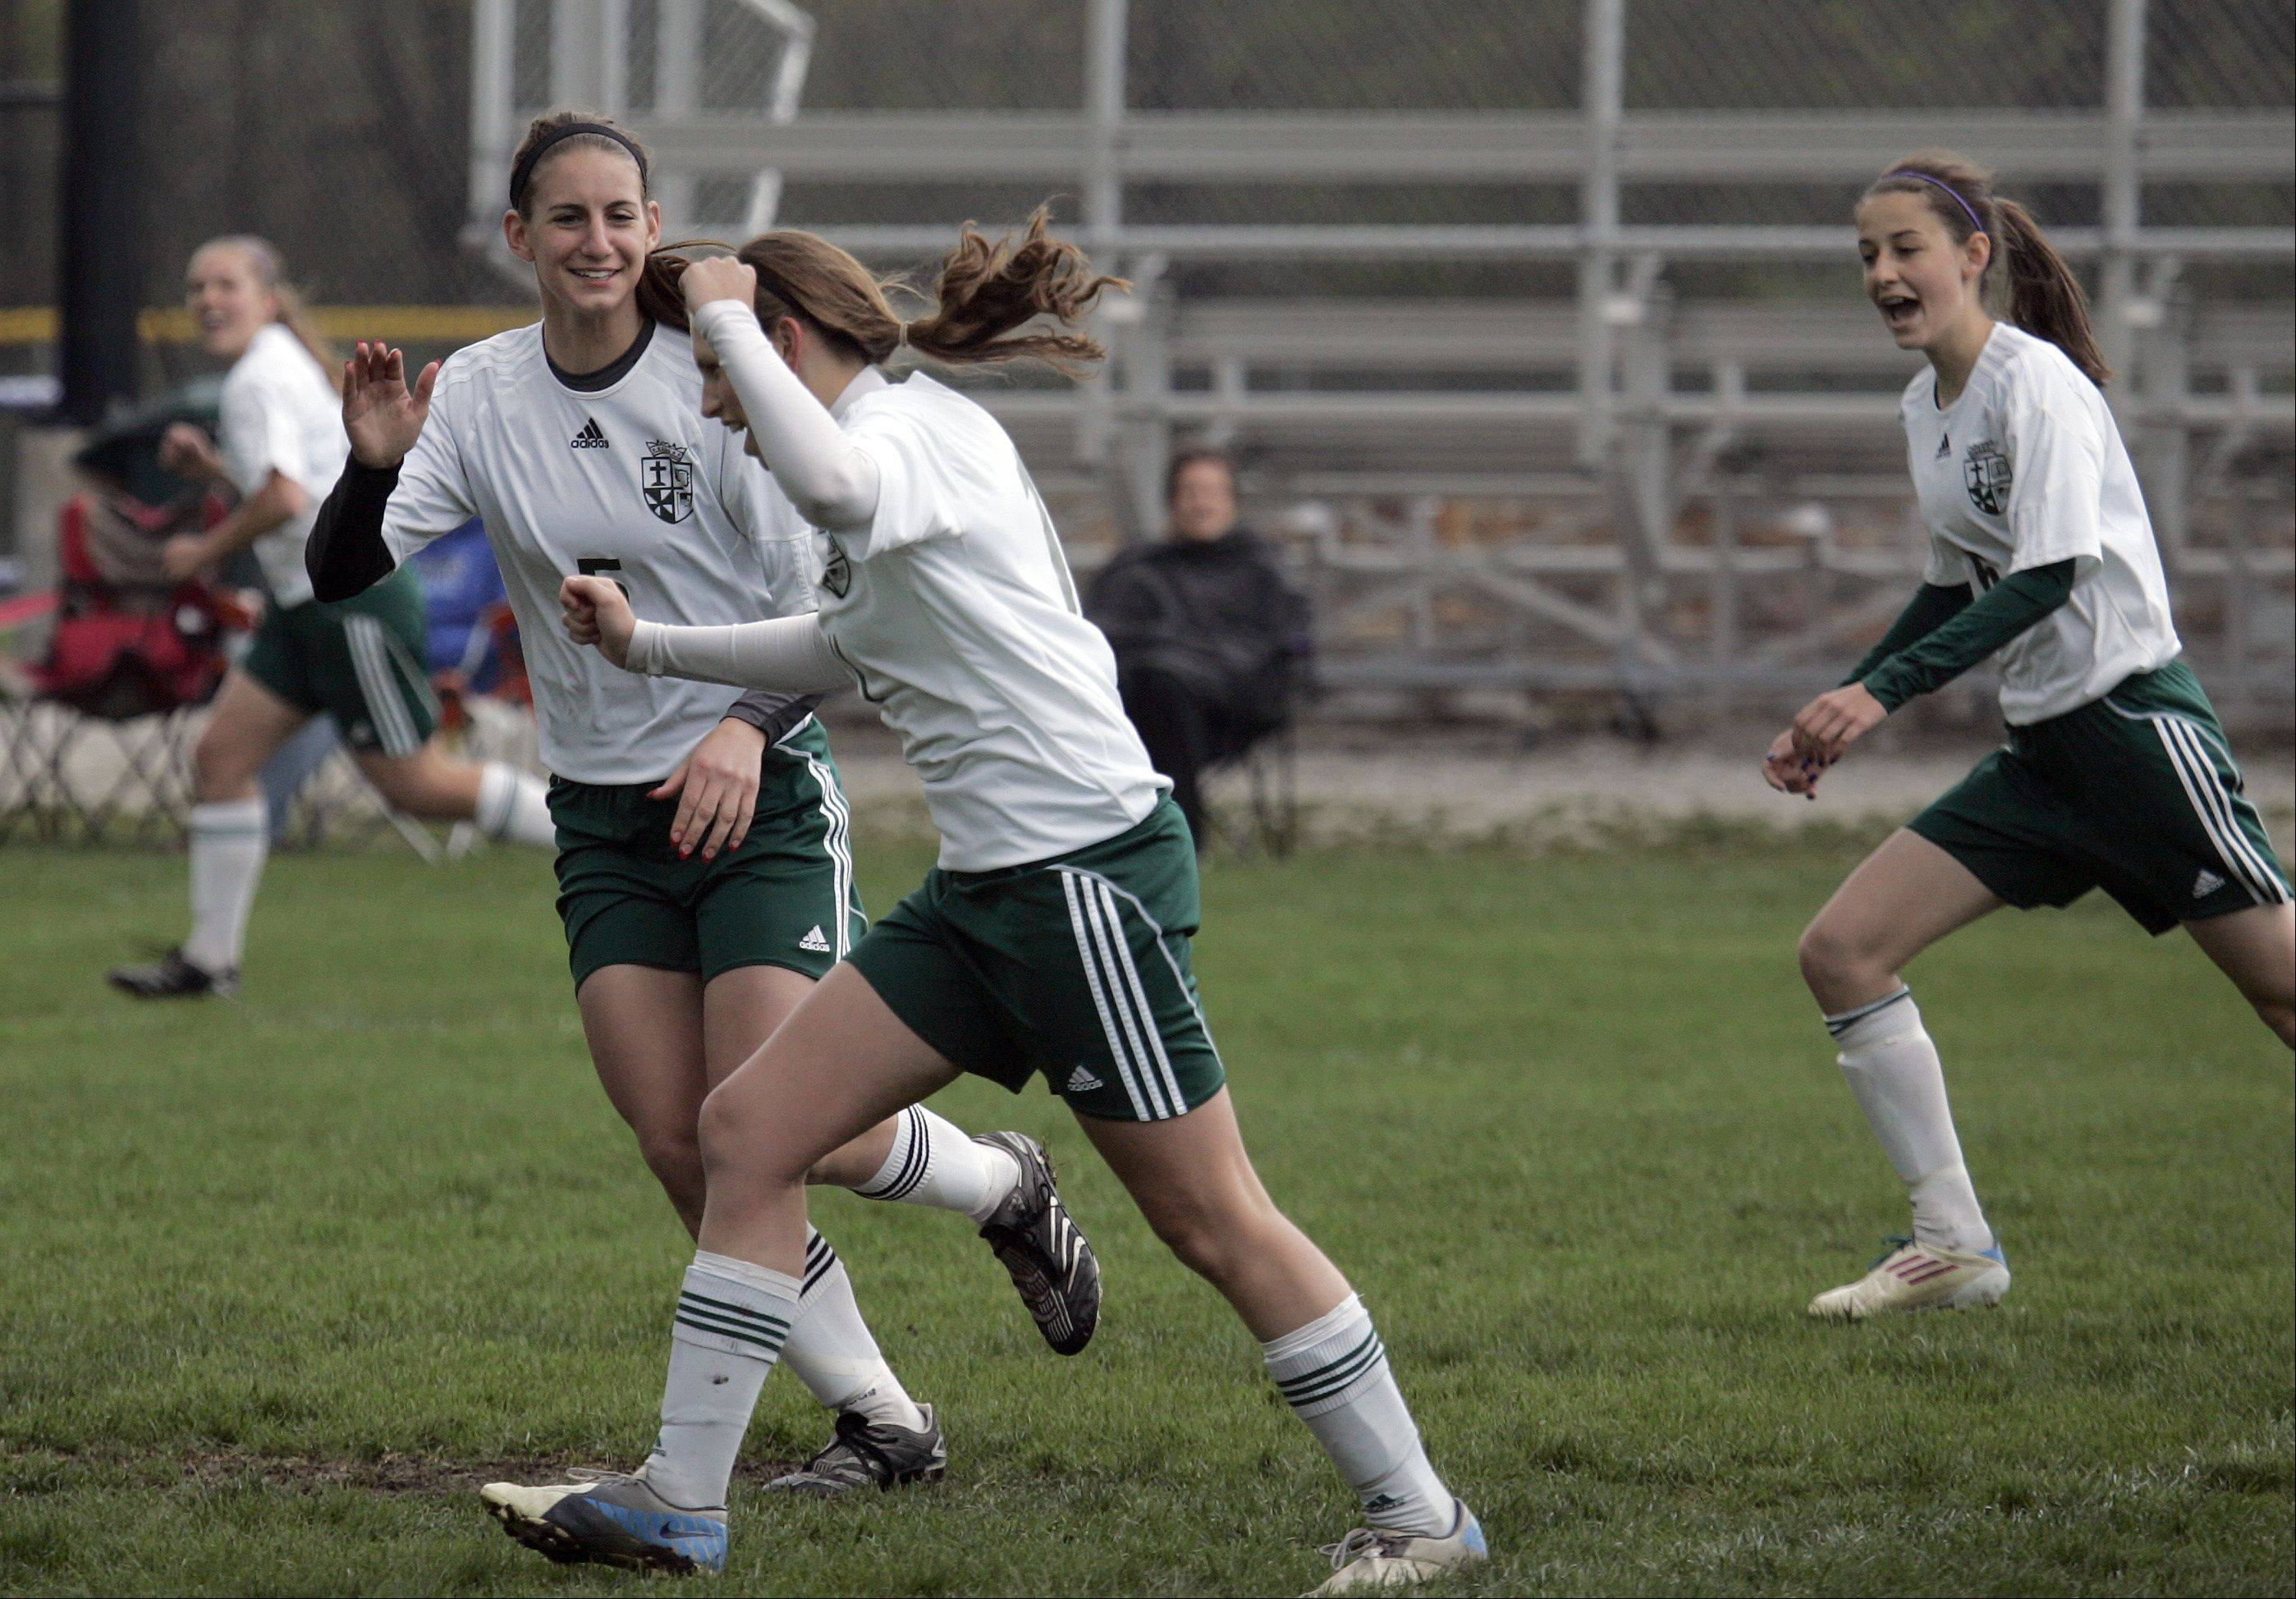 St. Edward's Allison Kruk celebrates after scoring the game's first goal Saturday during the Green Wave's 7-0 win over Westminster Christian in the Class 1A Westminster regional title game.